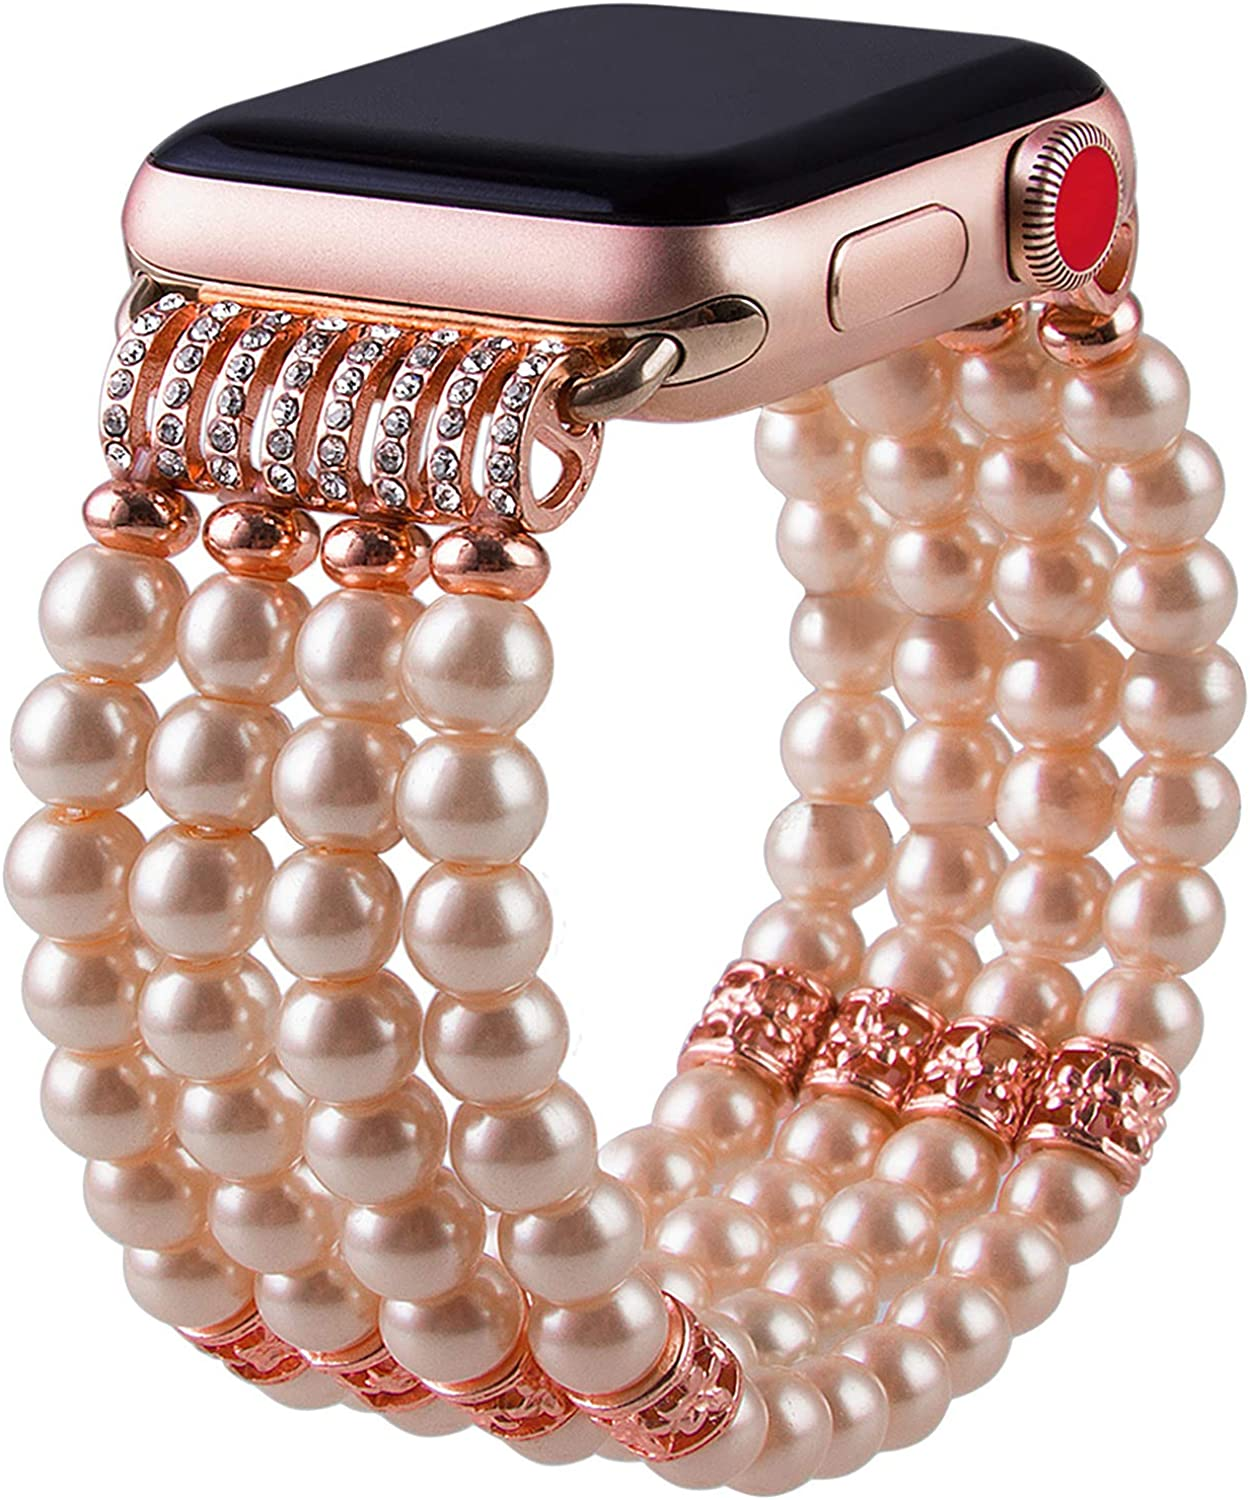 VIQIV for Handmade Beaded Compatitle Apple Watch Band 38mm 40mm 42mm 44mm Iwatch Series 5/4/3/2/1, Elastic Stretch Faux Pearl Bracelet Replacement Wristband Strap for Women Girls